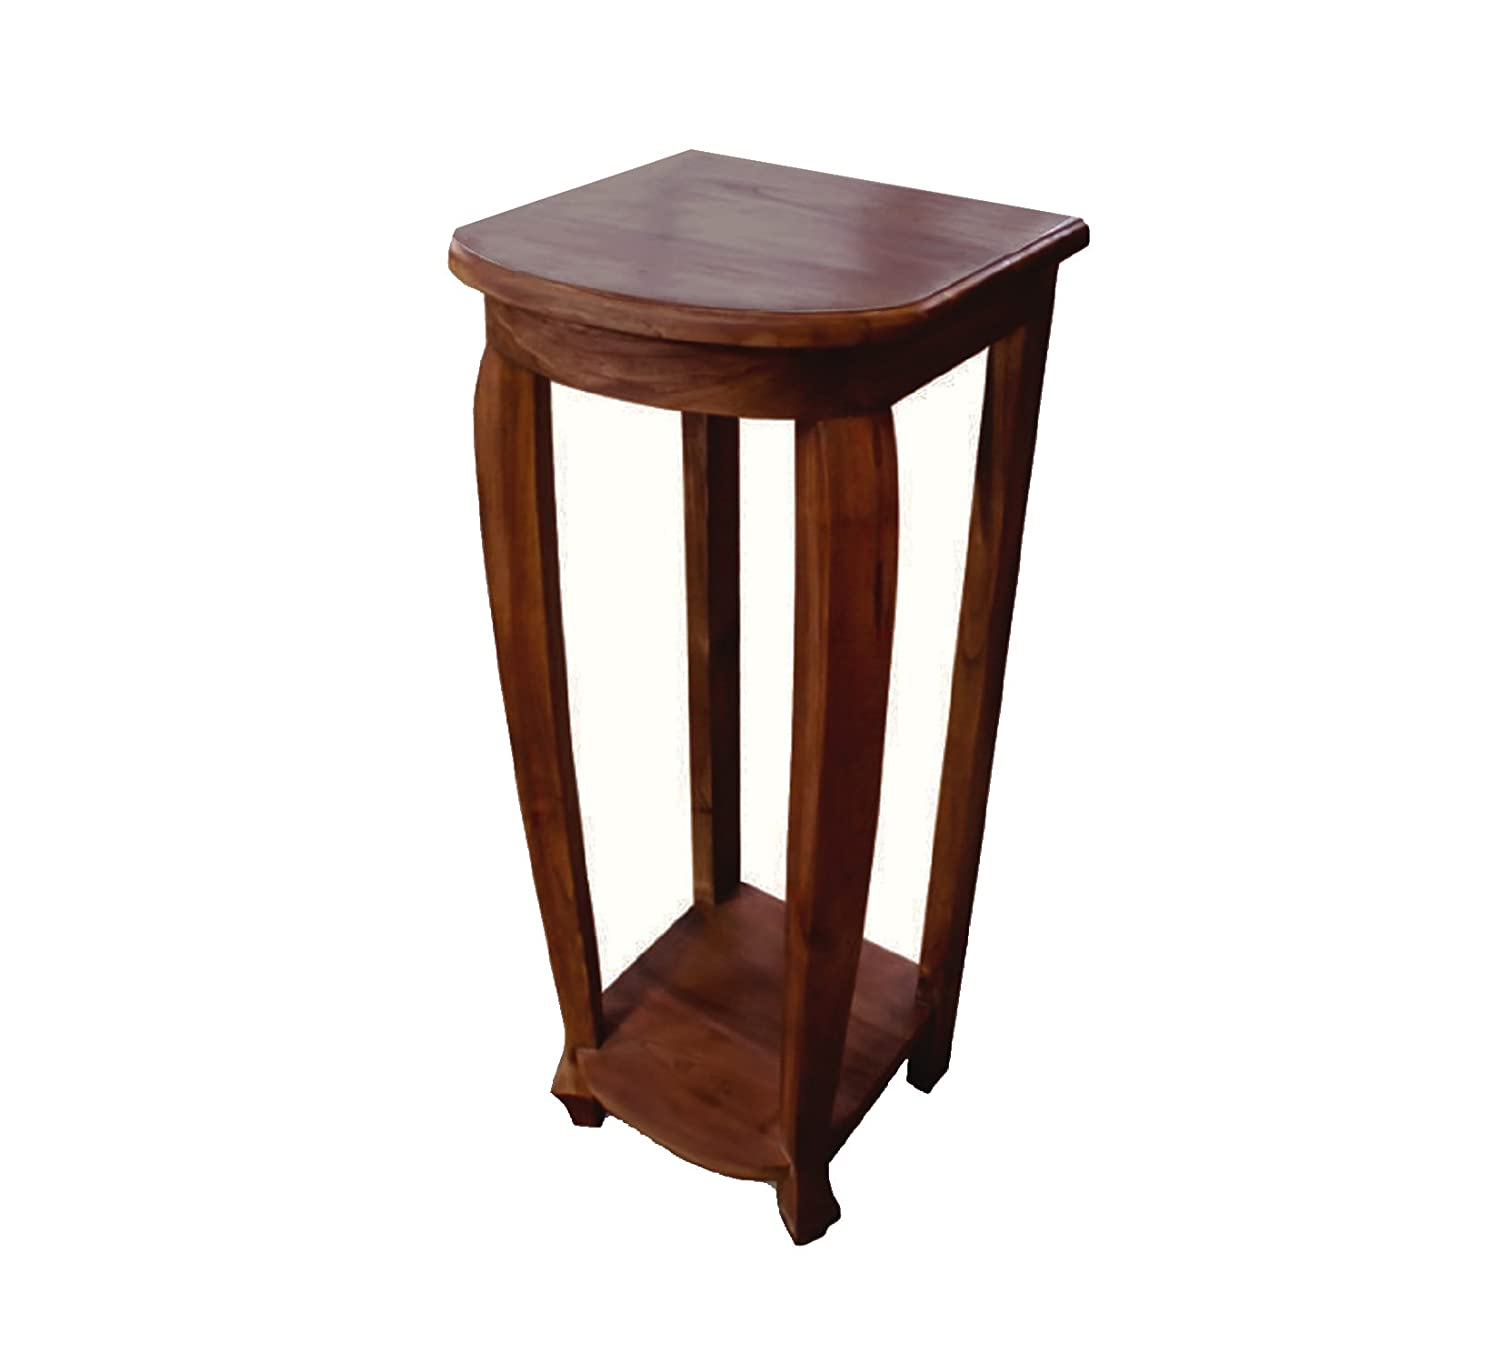 Amazon com nes furniture nes fine handcrafted furniture solid teak wood aurel lamp table end table 30 kitchen dining